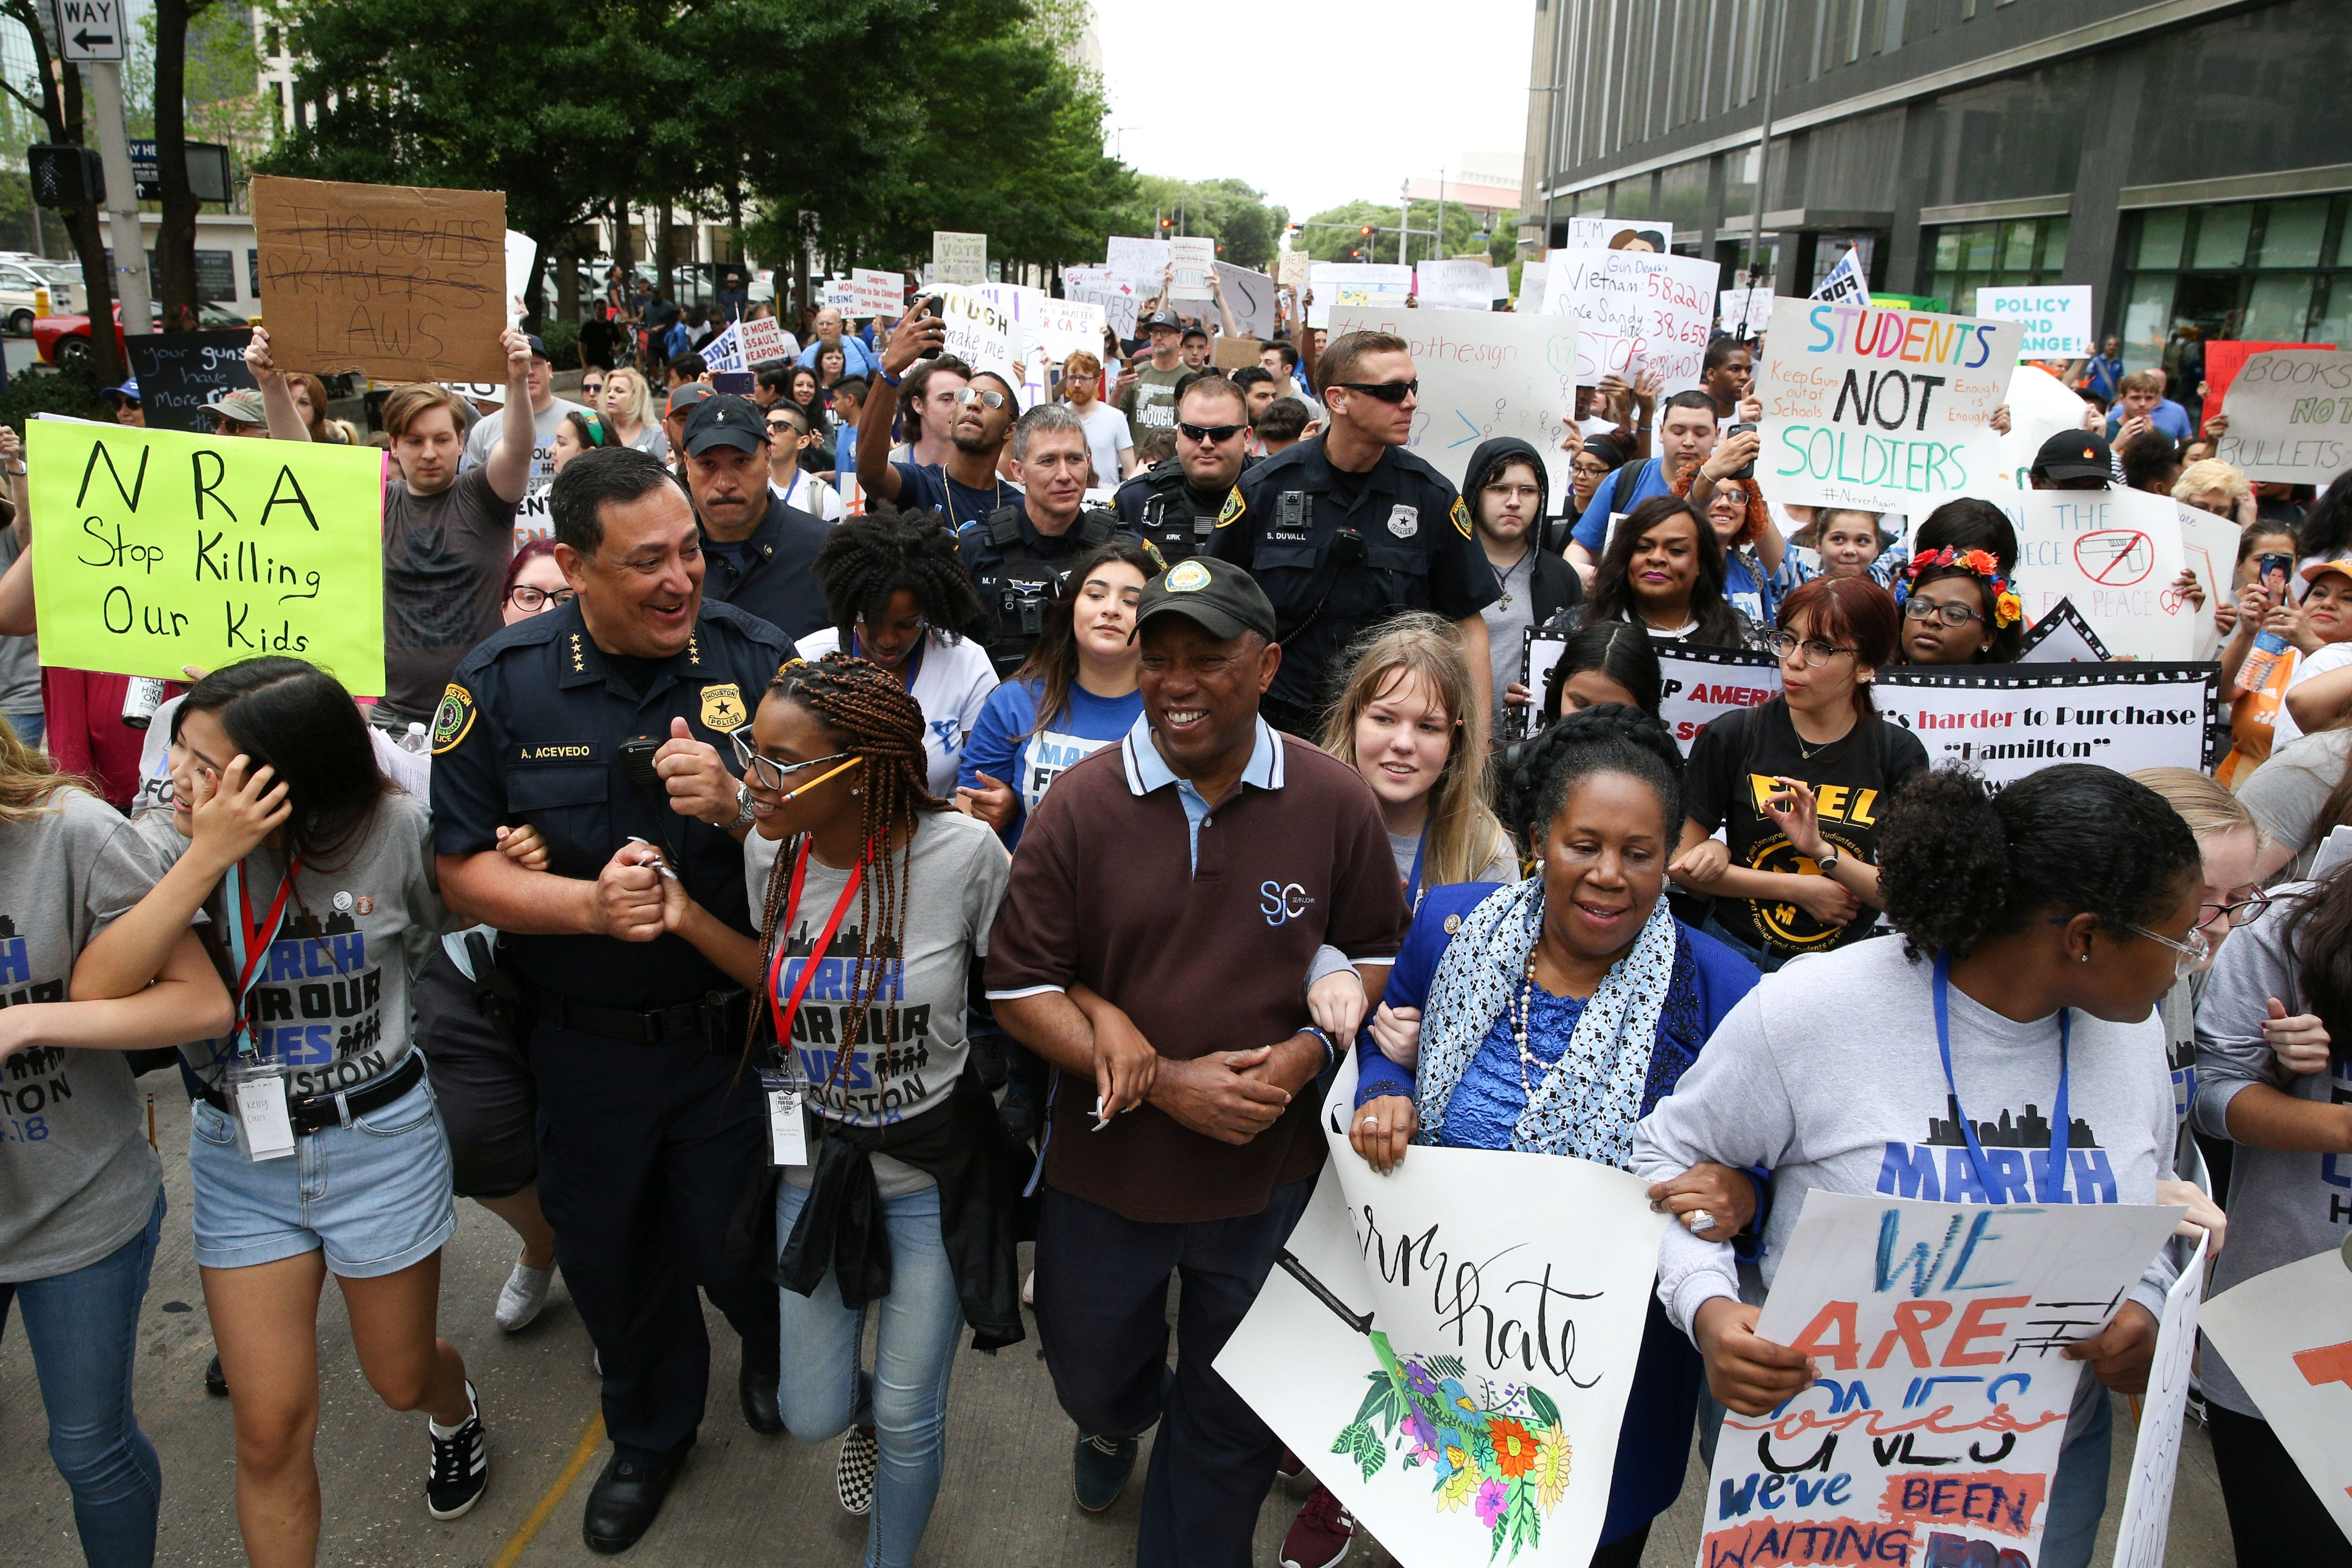 """Houston Police Chief Art Acevedo, Houston Mayor Sylvester Turner, U.S. Rep. Sheila Jackson Lee and student organizers lead the """"March for Our Lives"""", an organized demonstration to end gun violence, in downtown Houston, Texas, U.S., March 24, 2018.  REUTERS/Loren Elliott"""